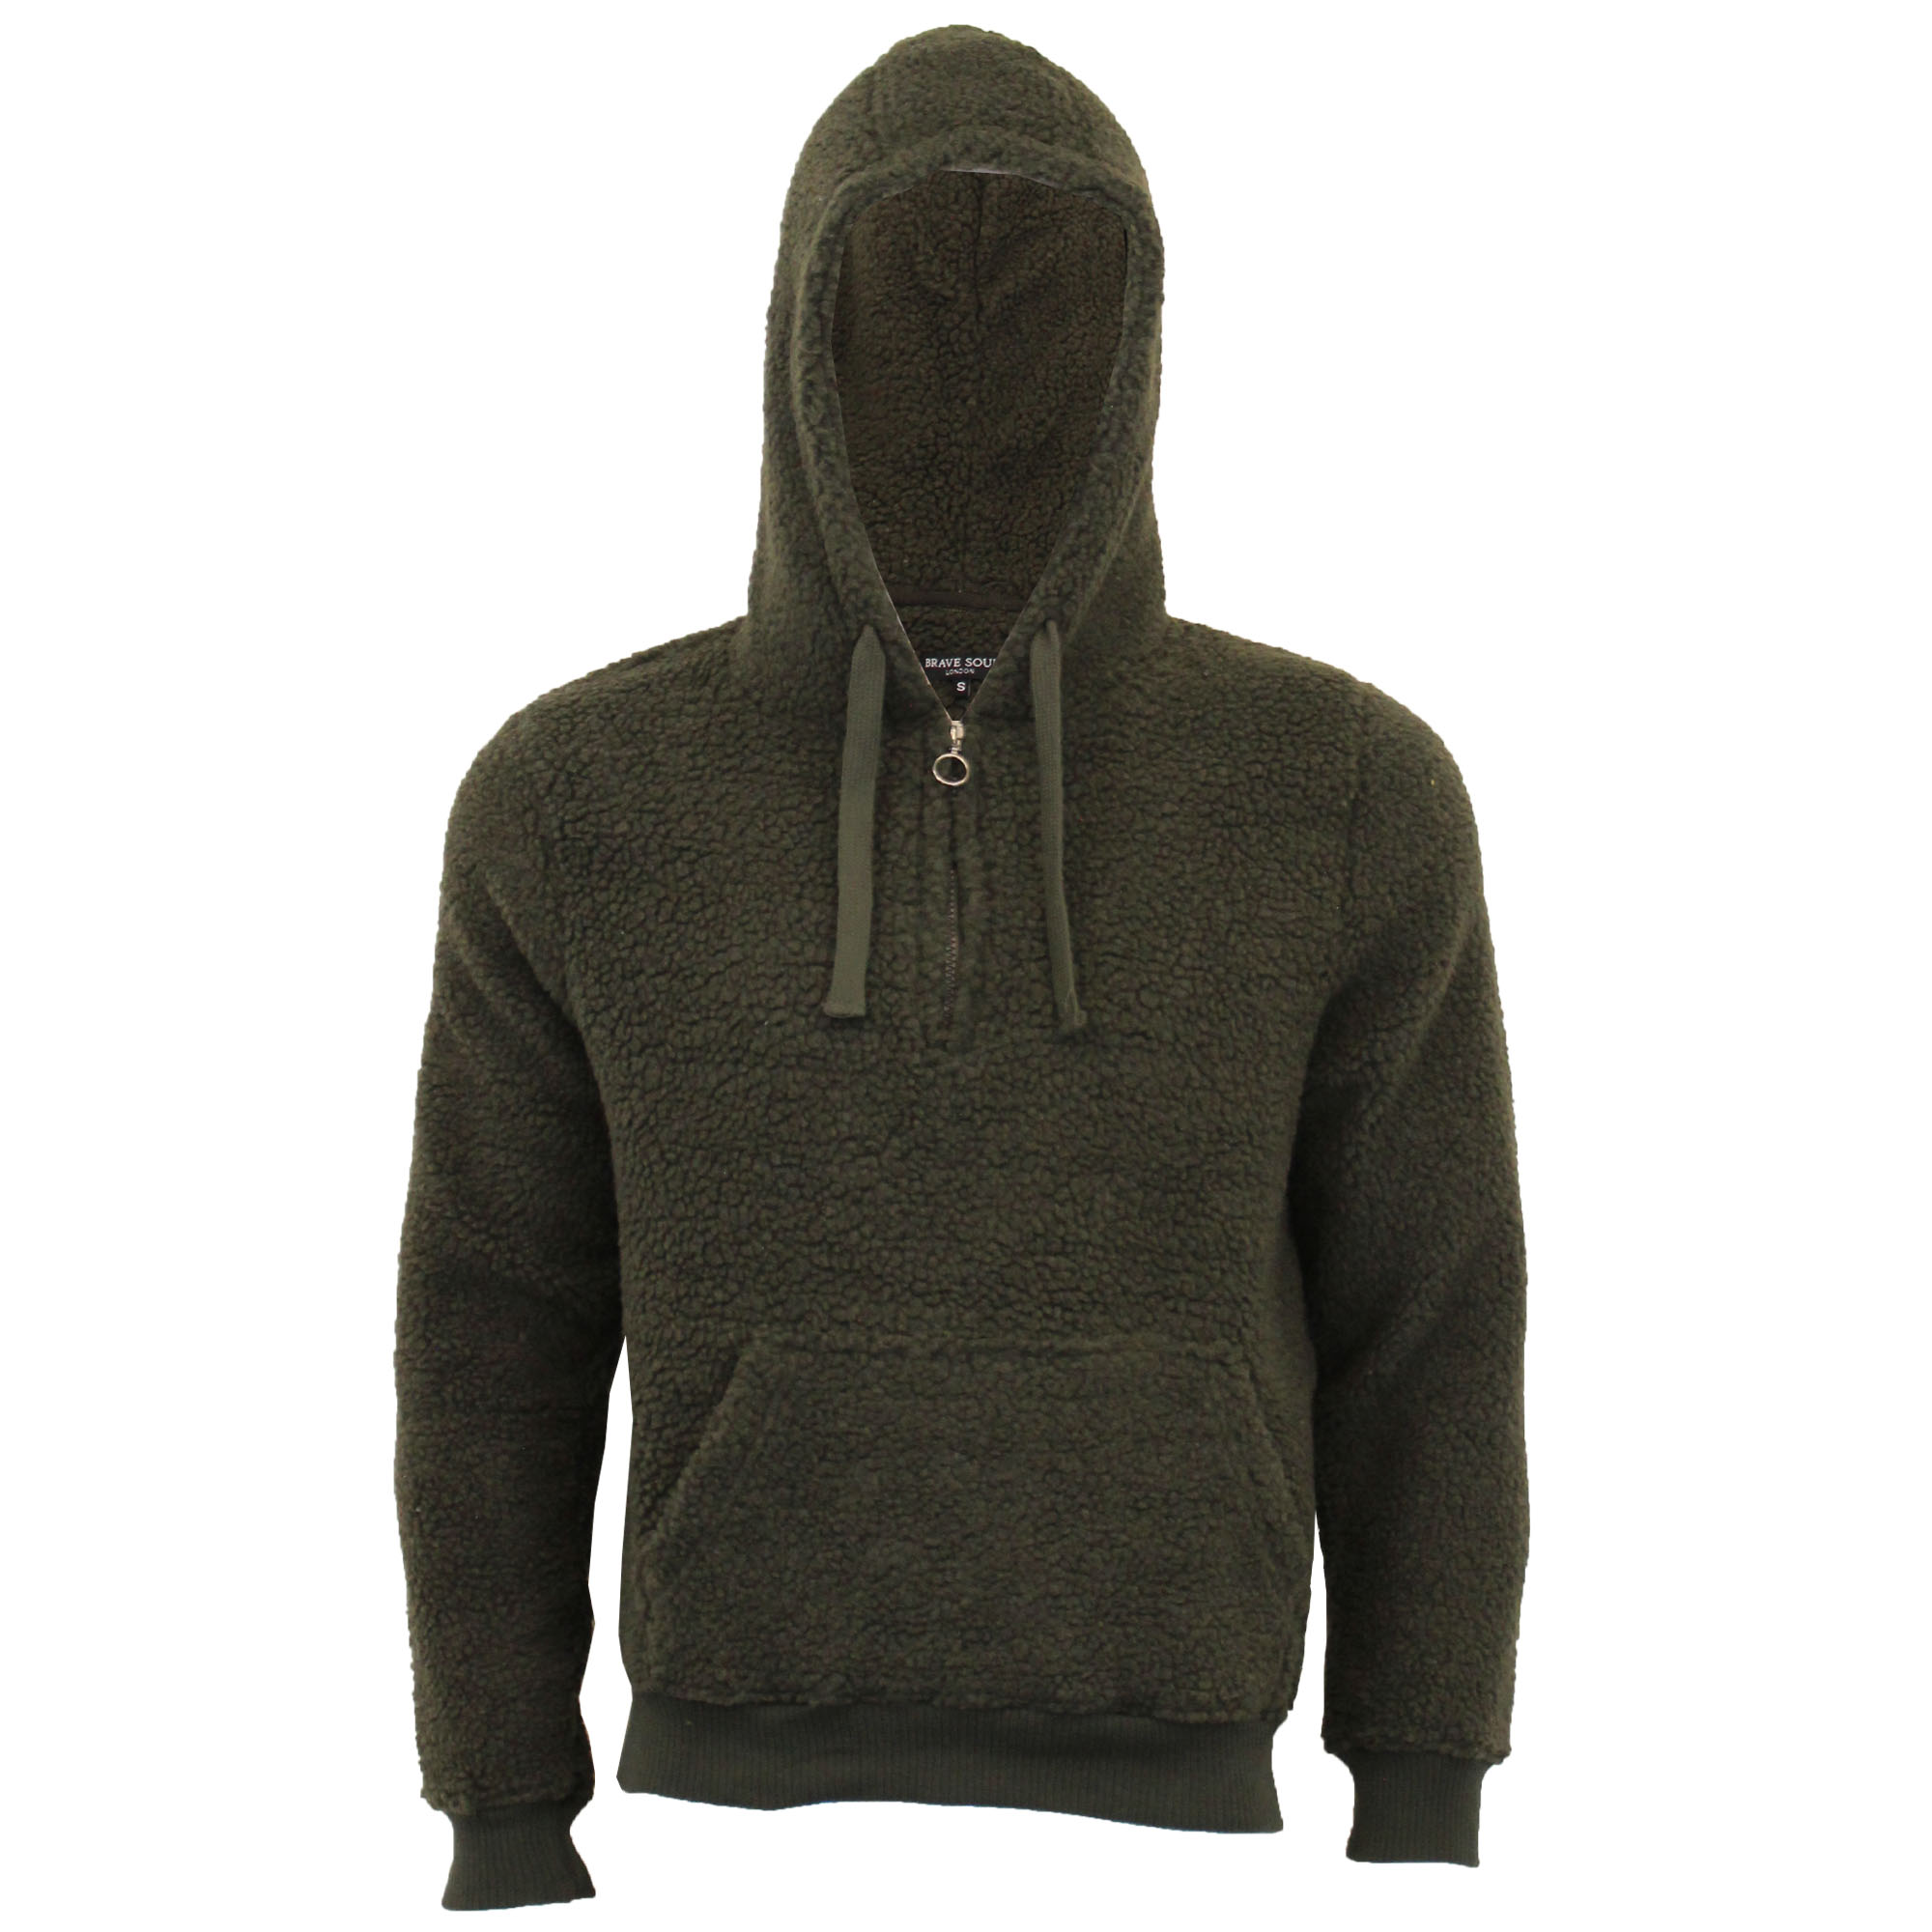 Mens-Borg-Sherpa-Fleece-Sweatshirt-Brave-Soul-DAIM-Over-The-Head-Hooded-Top-Warm thumbnail 6